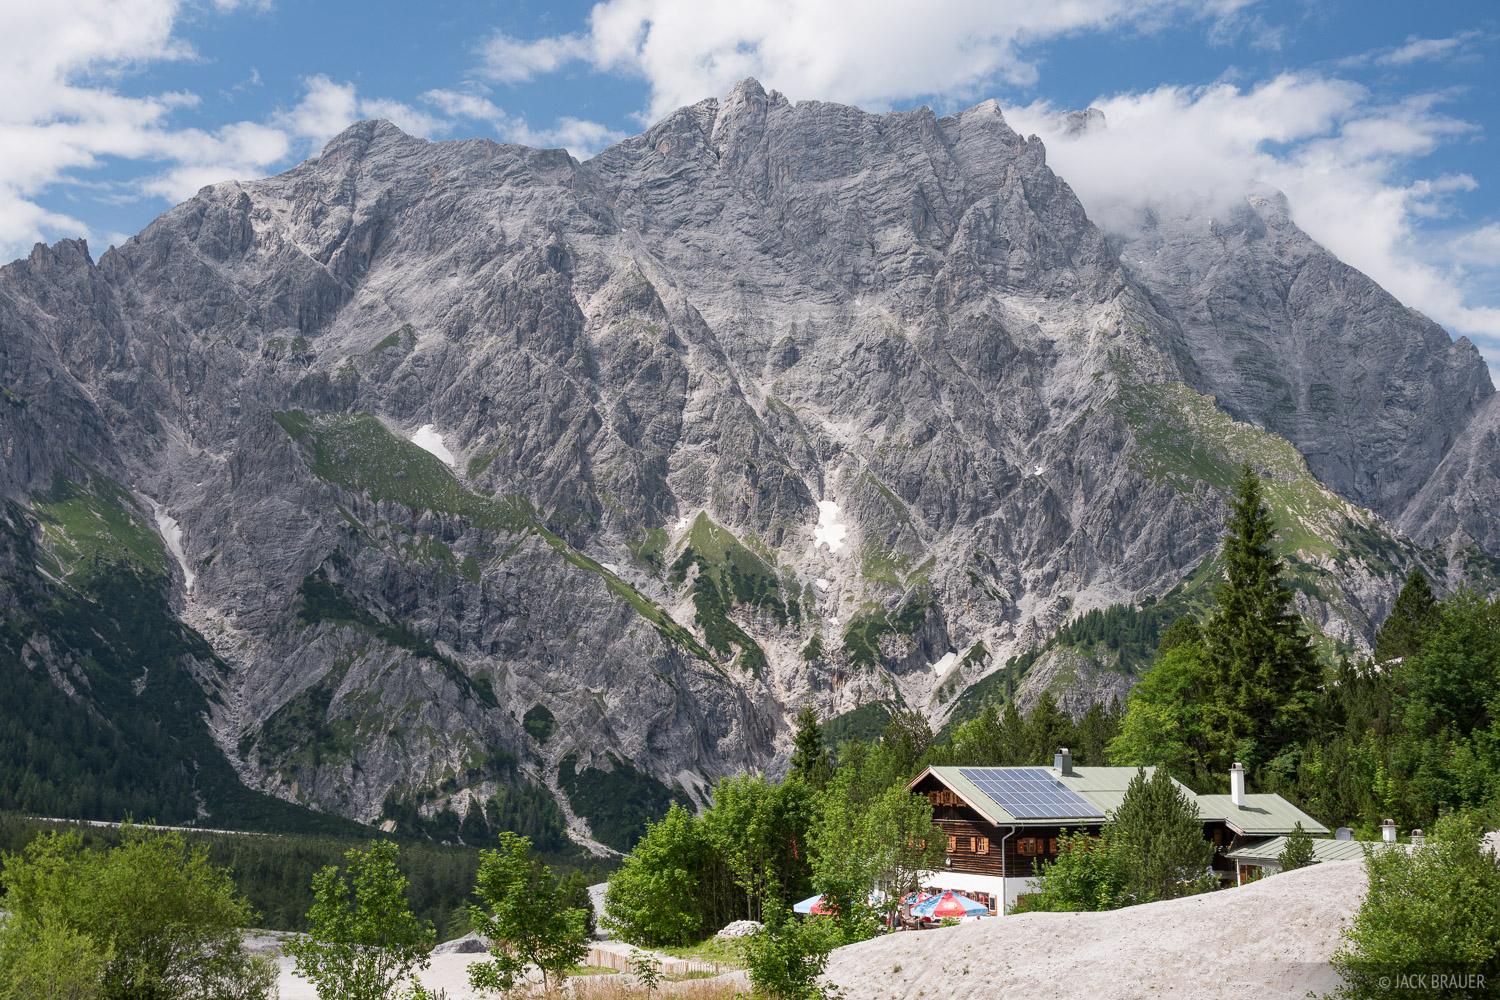 Berchtesgaden, Europe, Germany, Wimbachgrieshütte, hut, photo